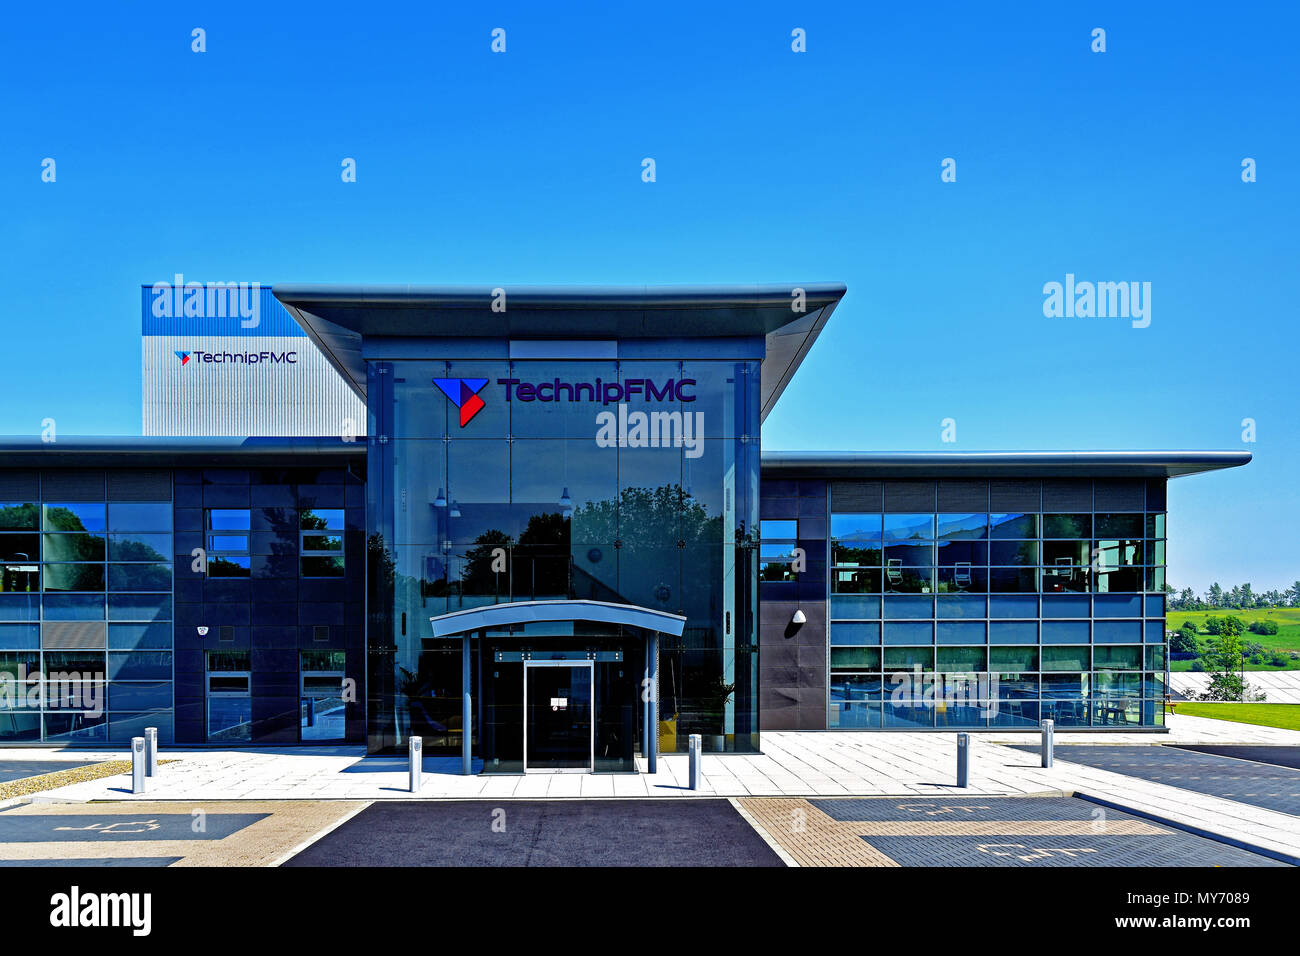 Newcastle upon Tyne Technip FMC Subsea Technologies - Stock Image